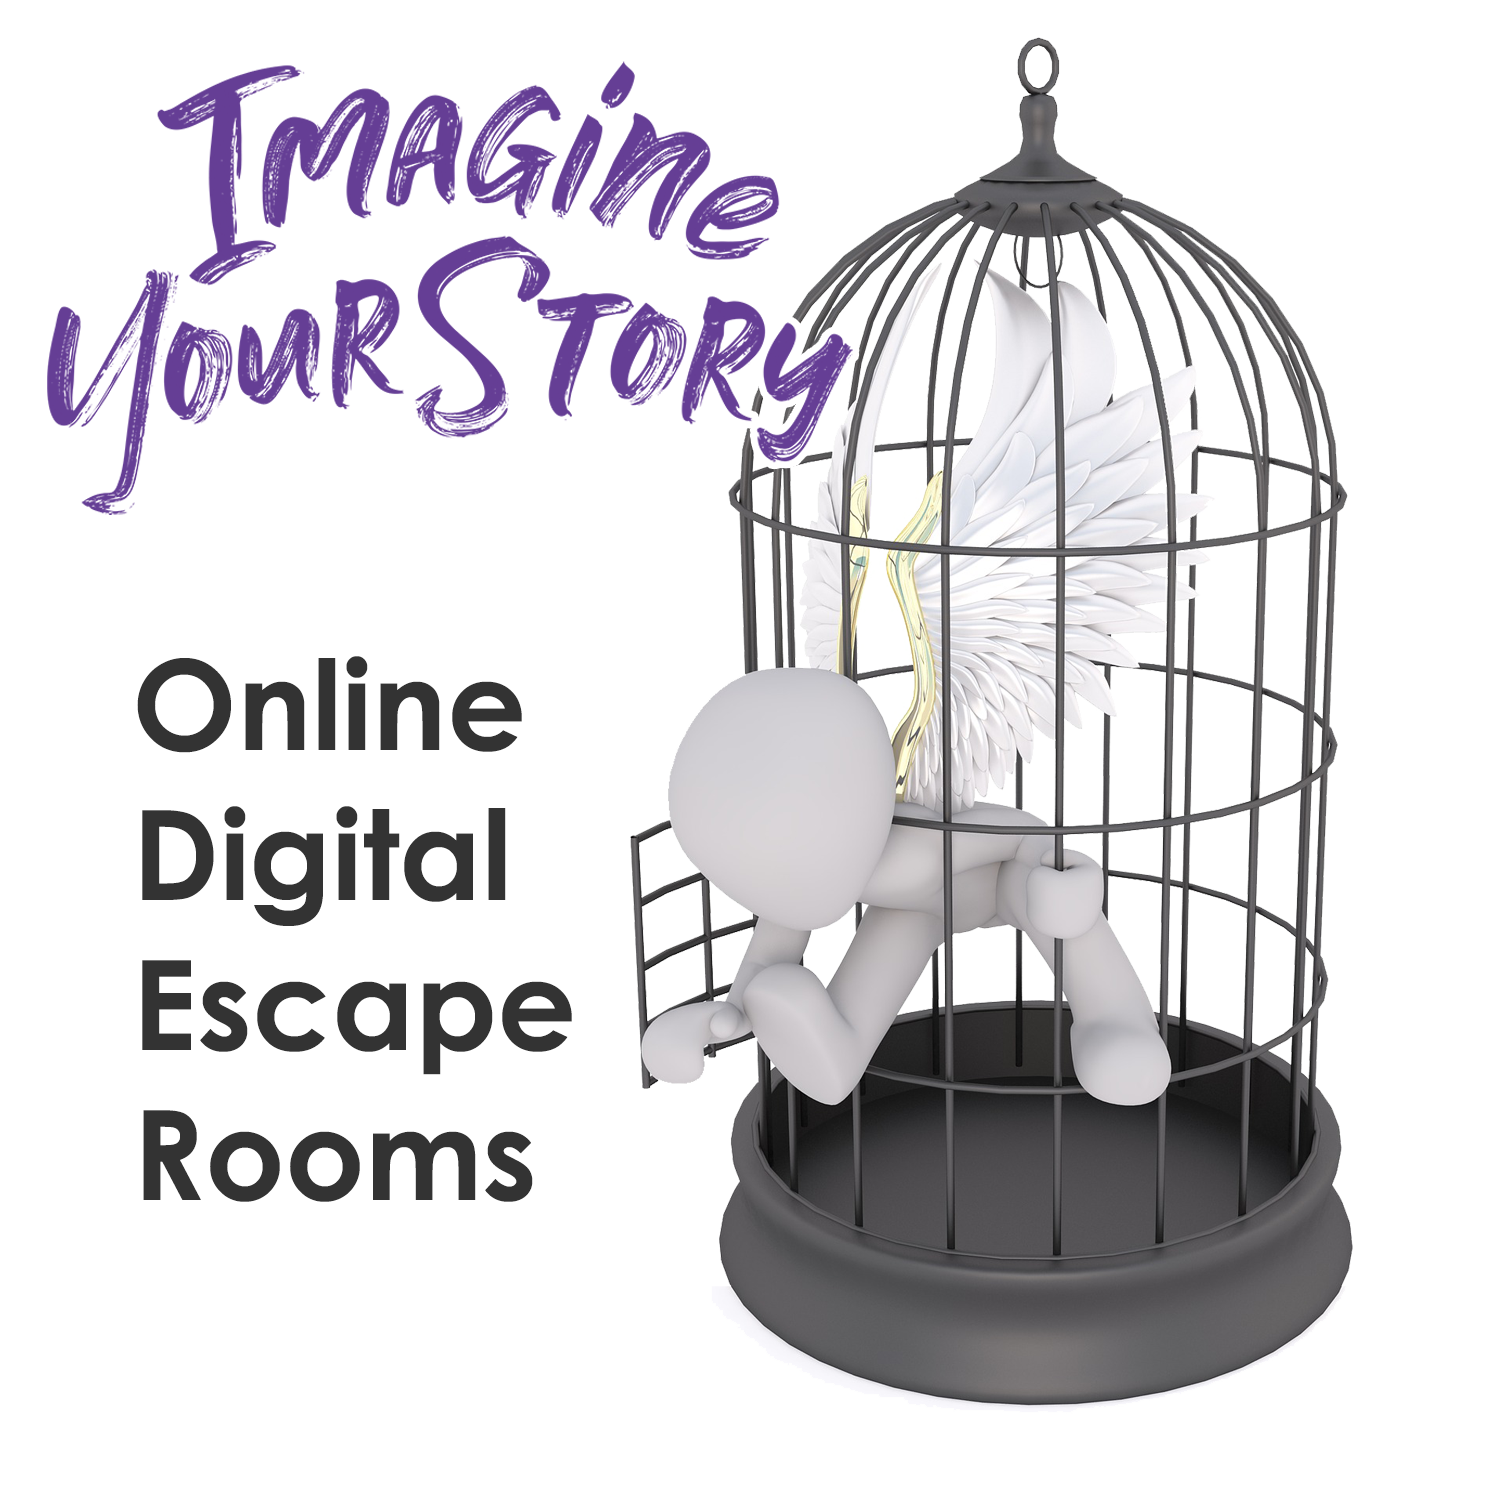 """image of 3D human figure with wings escaping from cage """"Online Digital Escape Rooms"""" with link to Escape room page"""